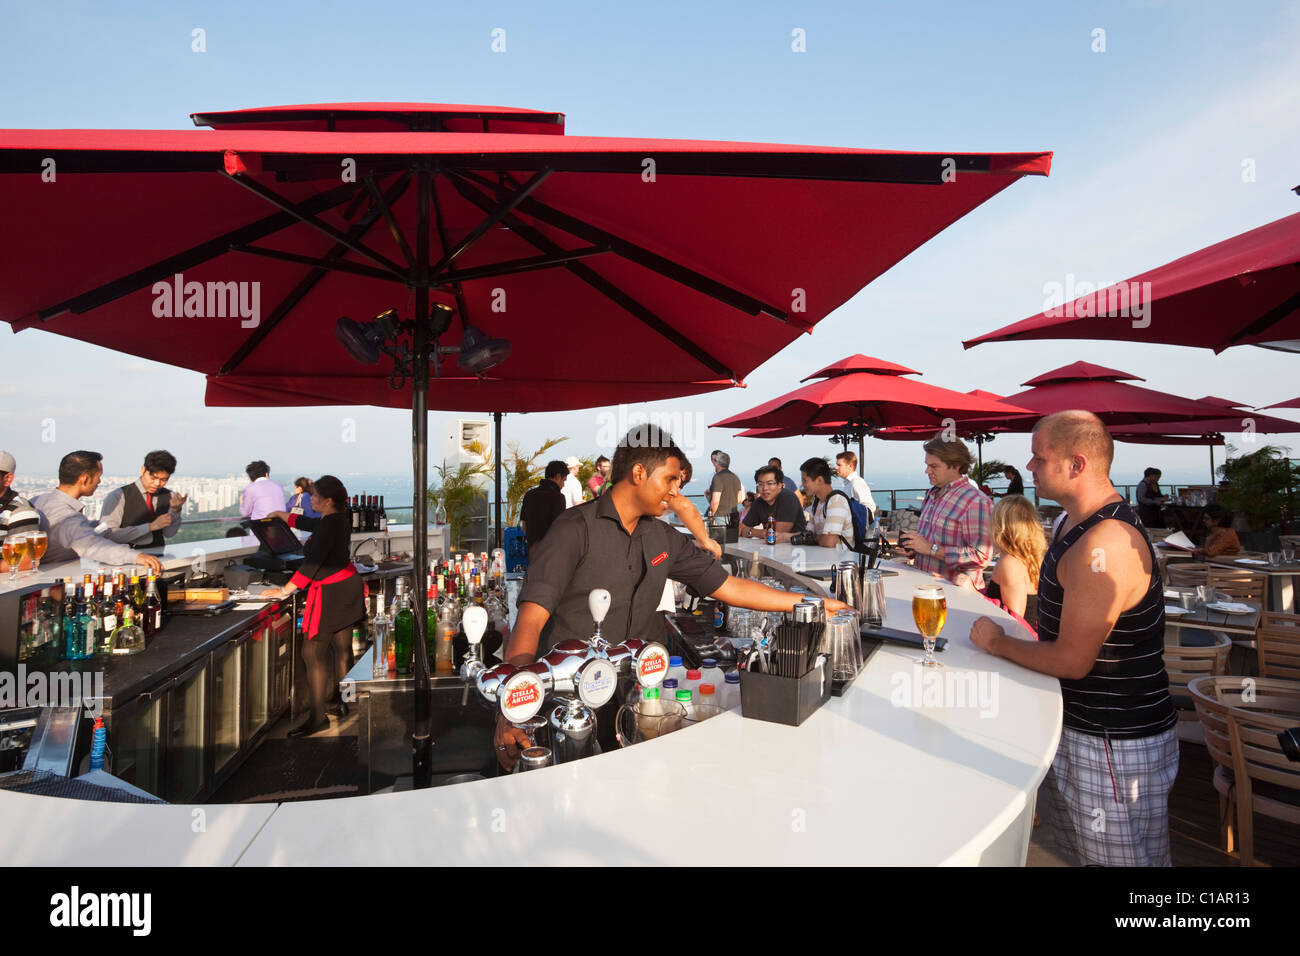 Sunset drinks at the rooftop bar of the Marina Bay Sands SkyPark - 200 metres above the city.  Marina Bay, Singapore - Stock Image